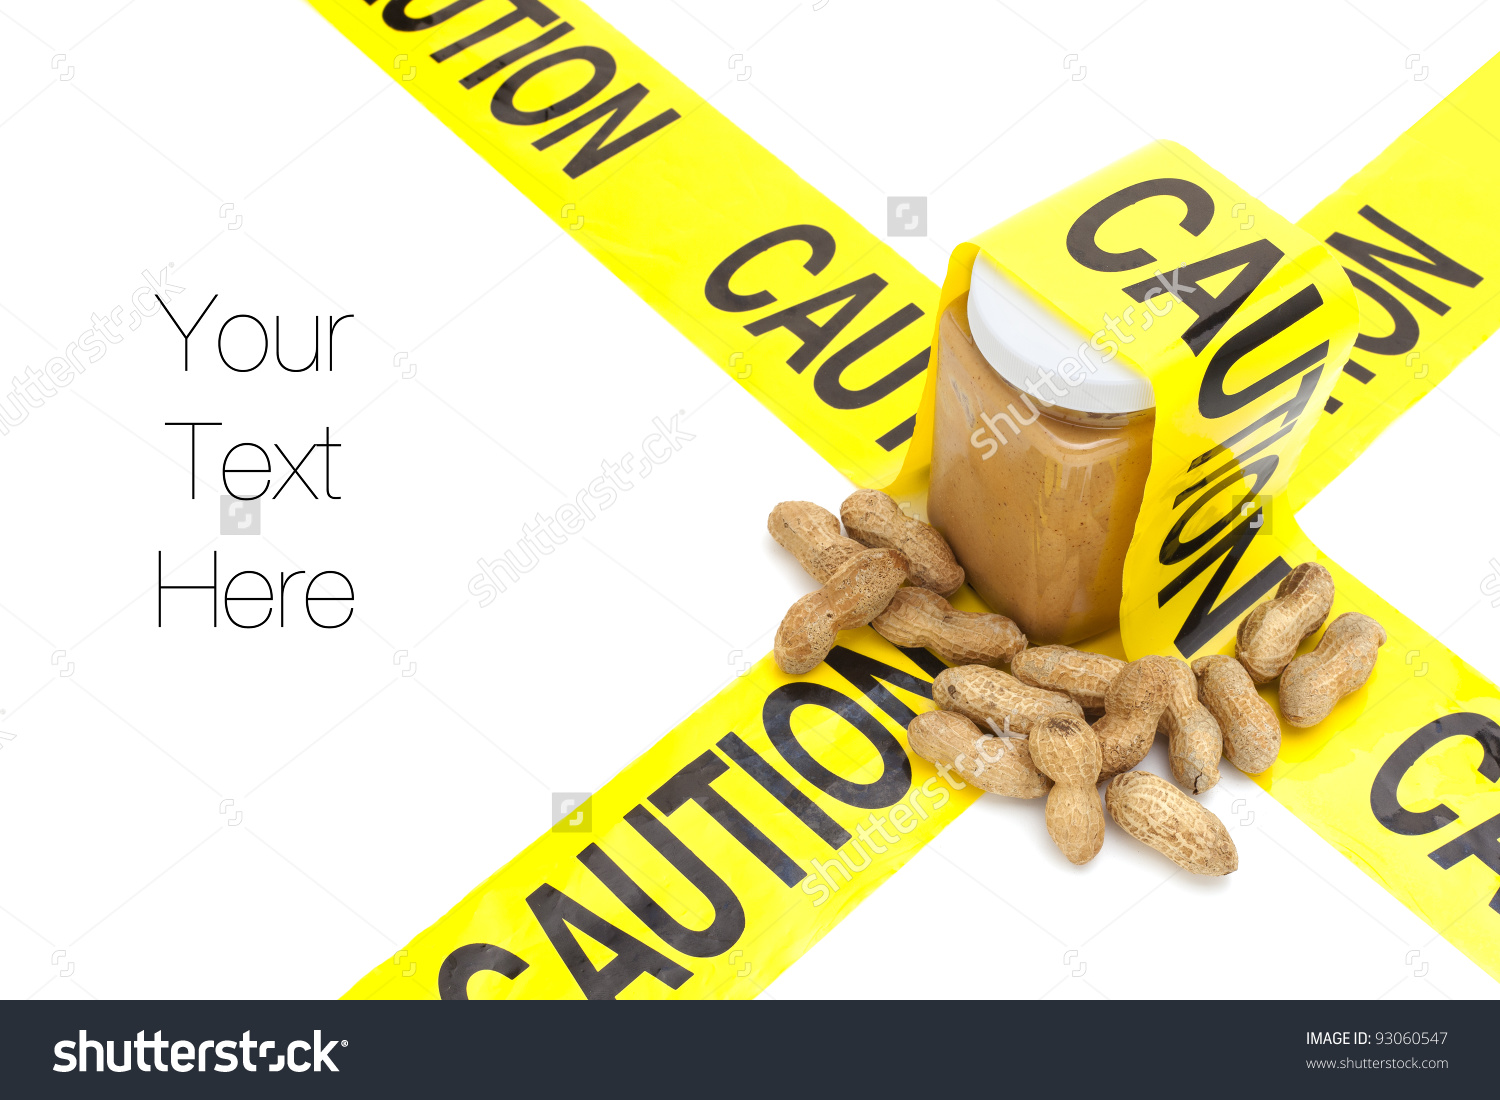 Allergic To Peanuts, Jar Of Peanut Butter With Raw Peanuts With.